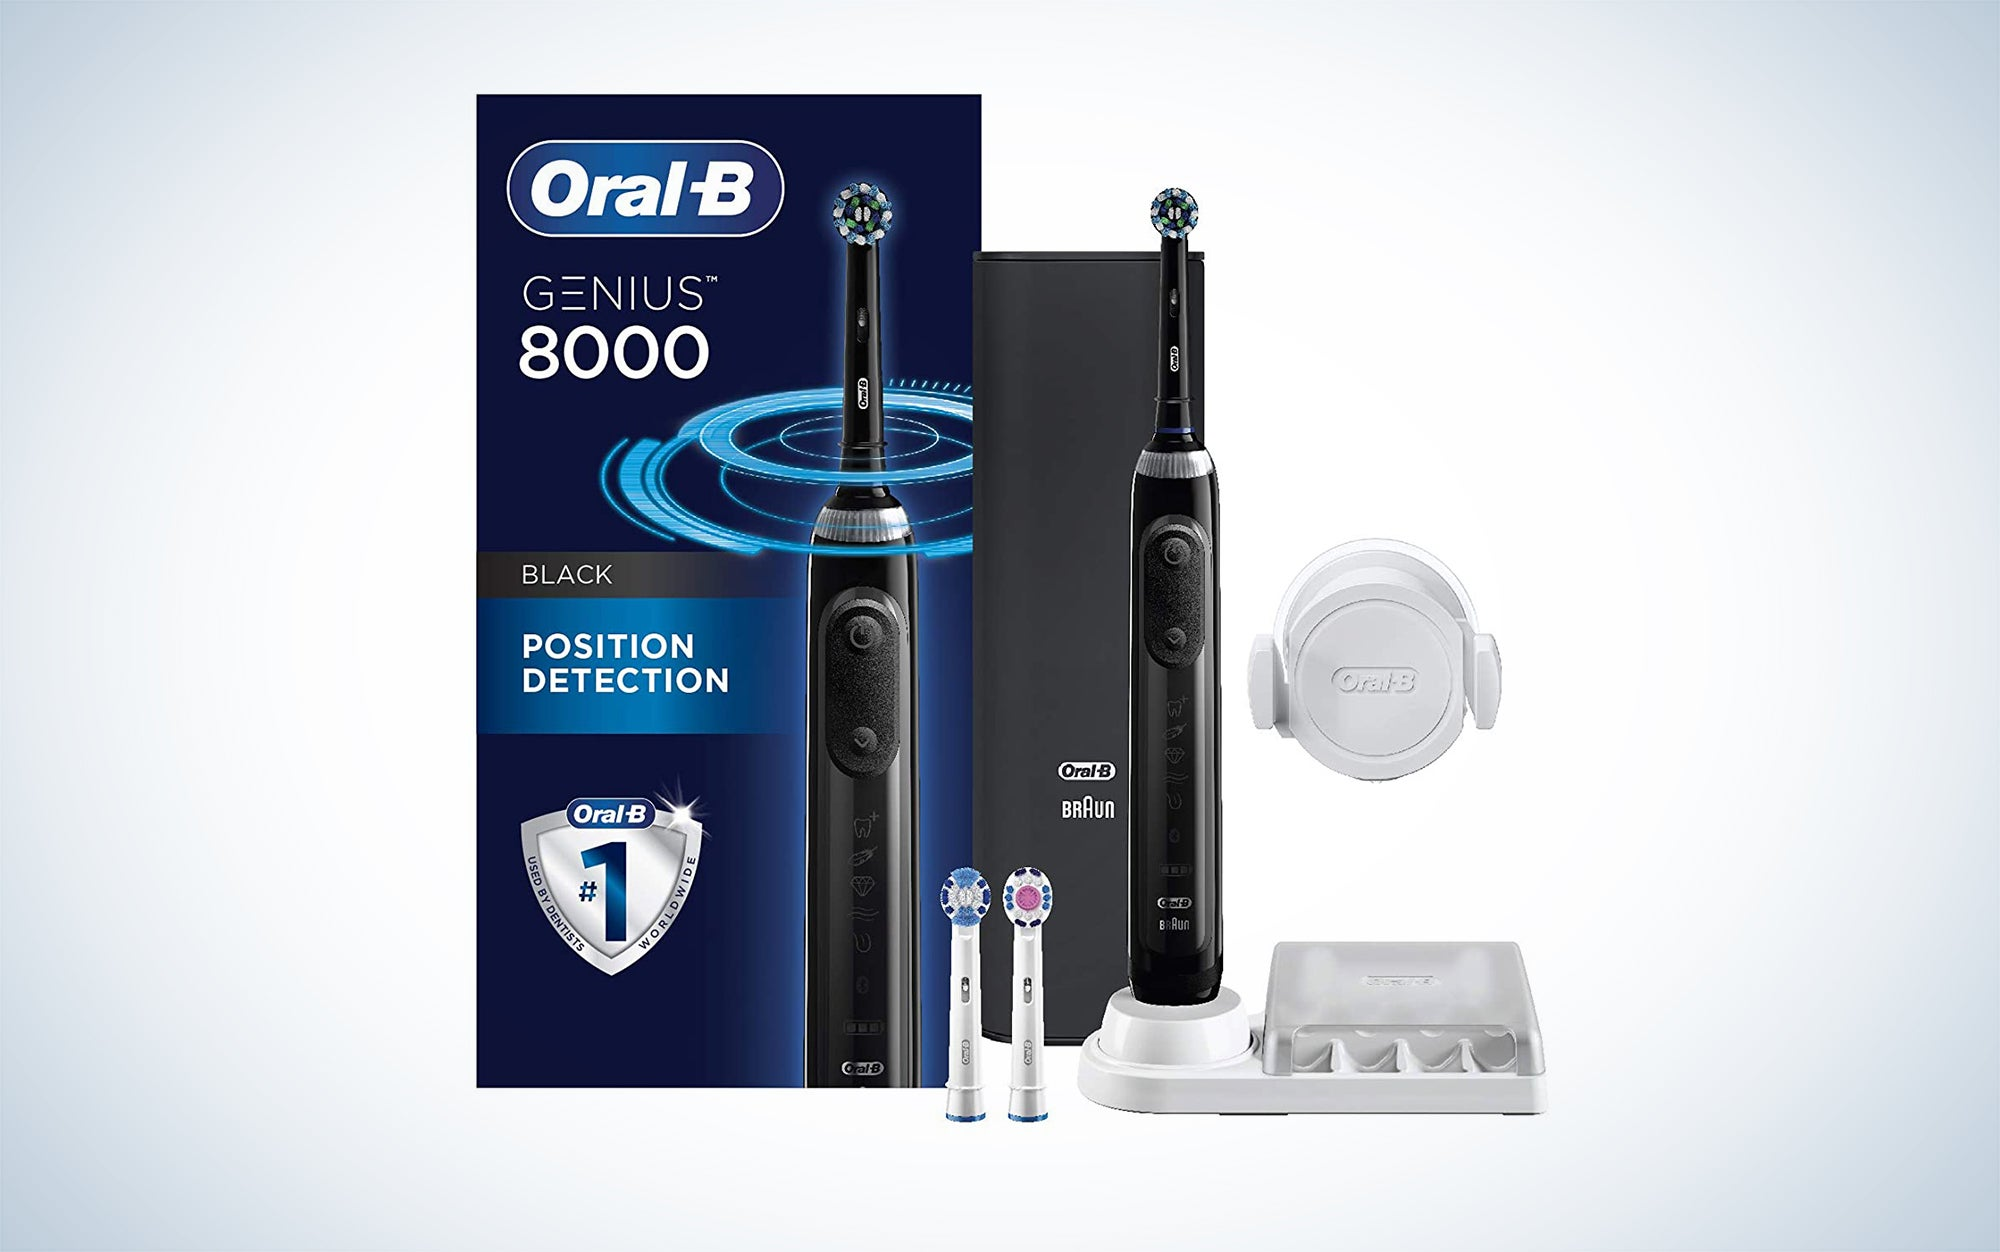 Oral-B Genius Pro 8000 Electronic Power Rechargeable Battery Electric Toothbrush is an Oral-B electric toothbrush with many different cleaning modes.